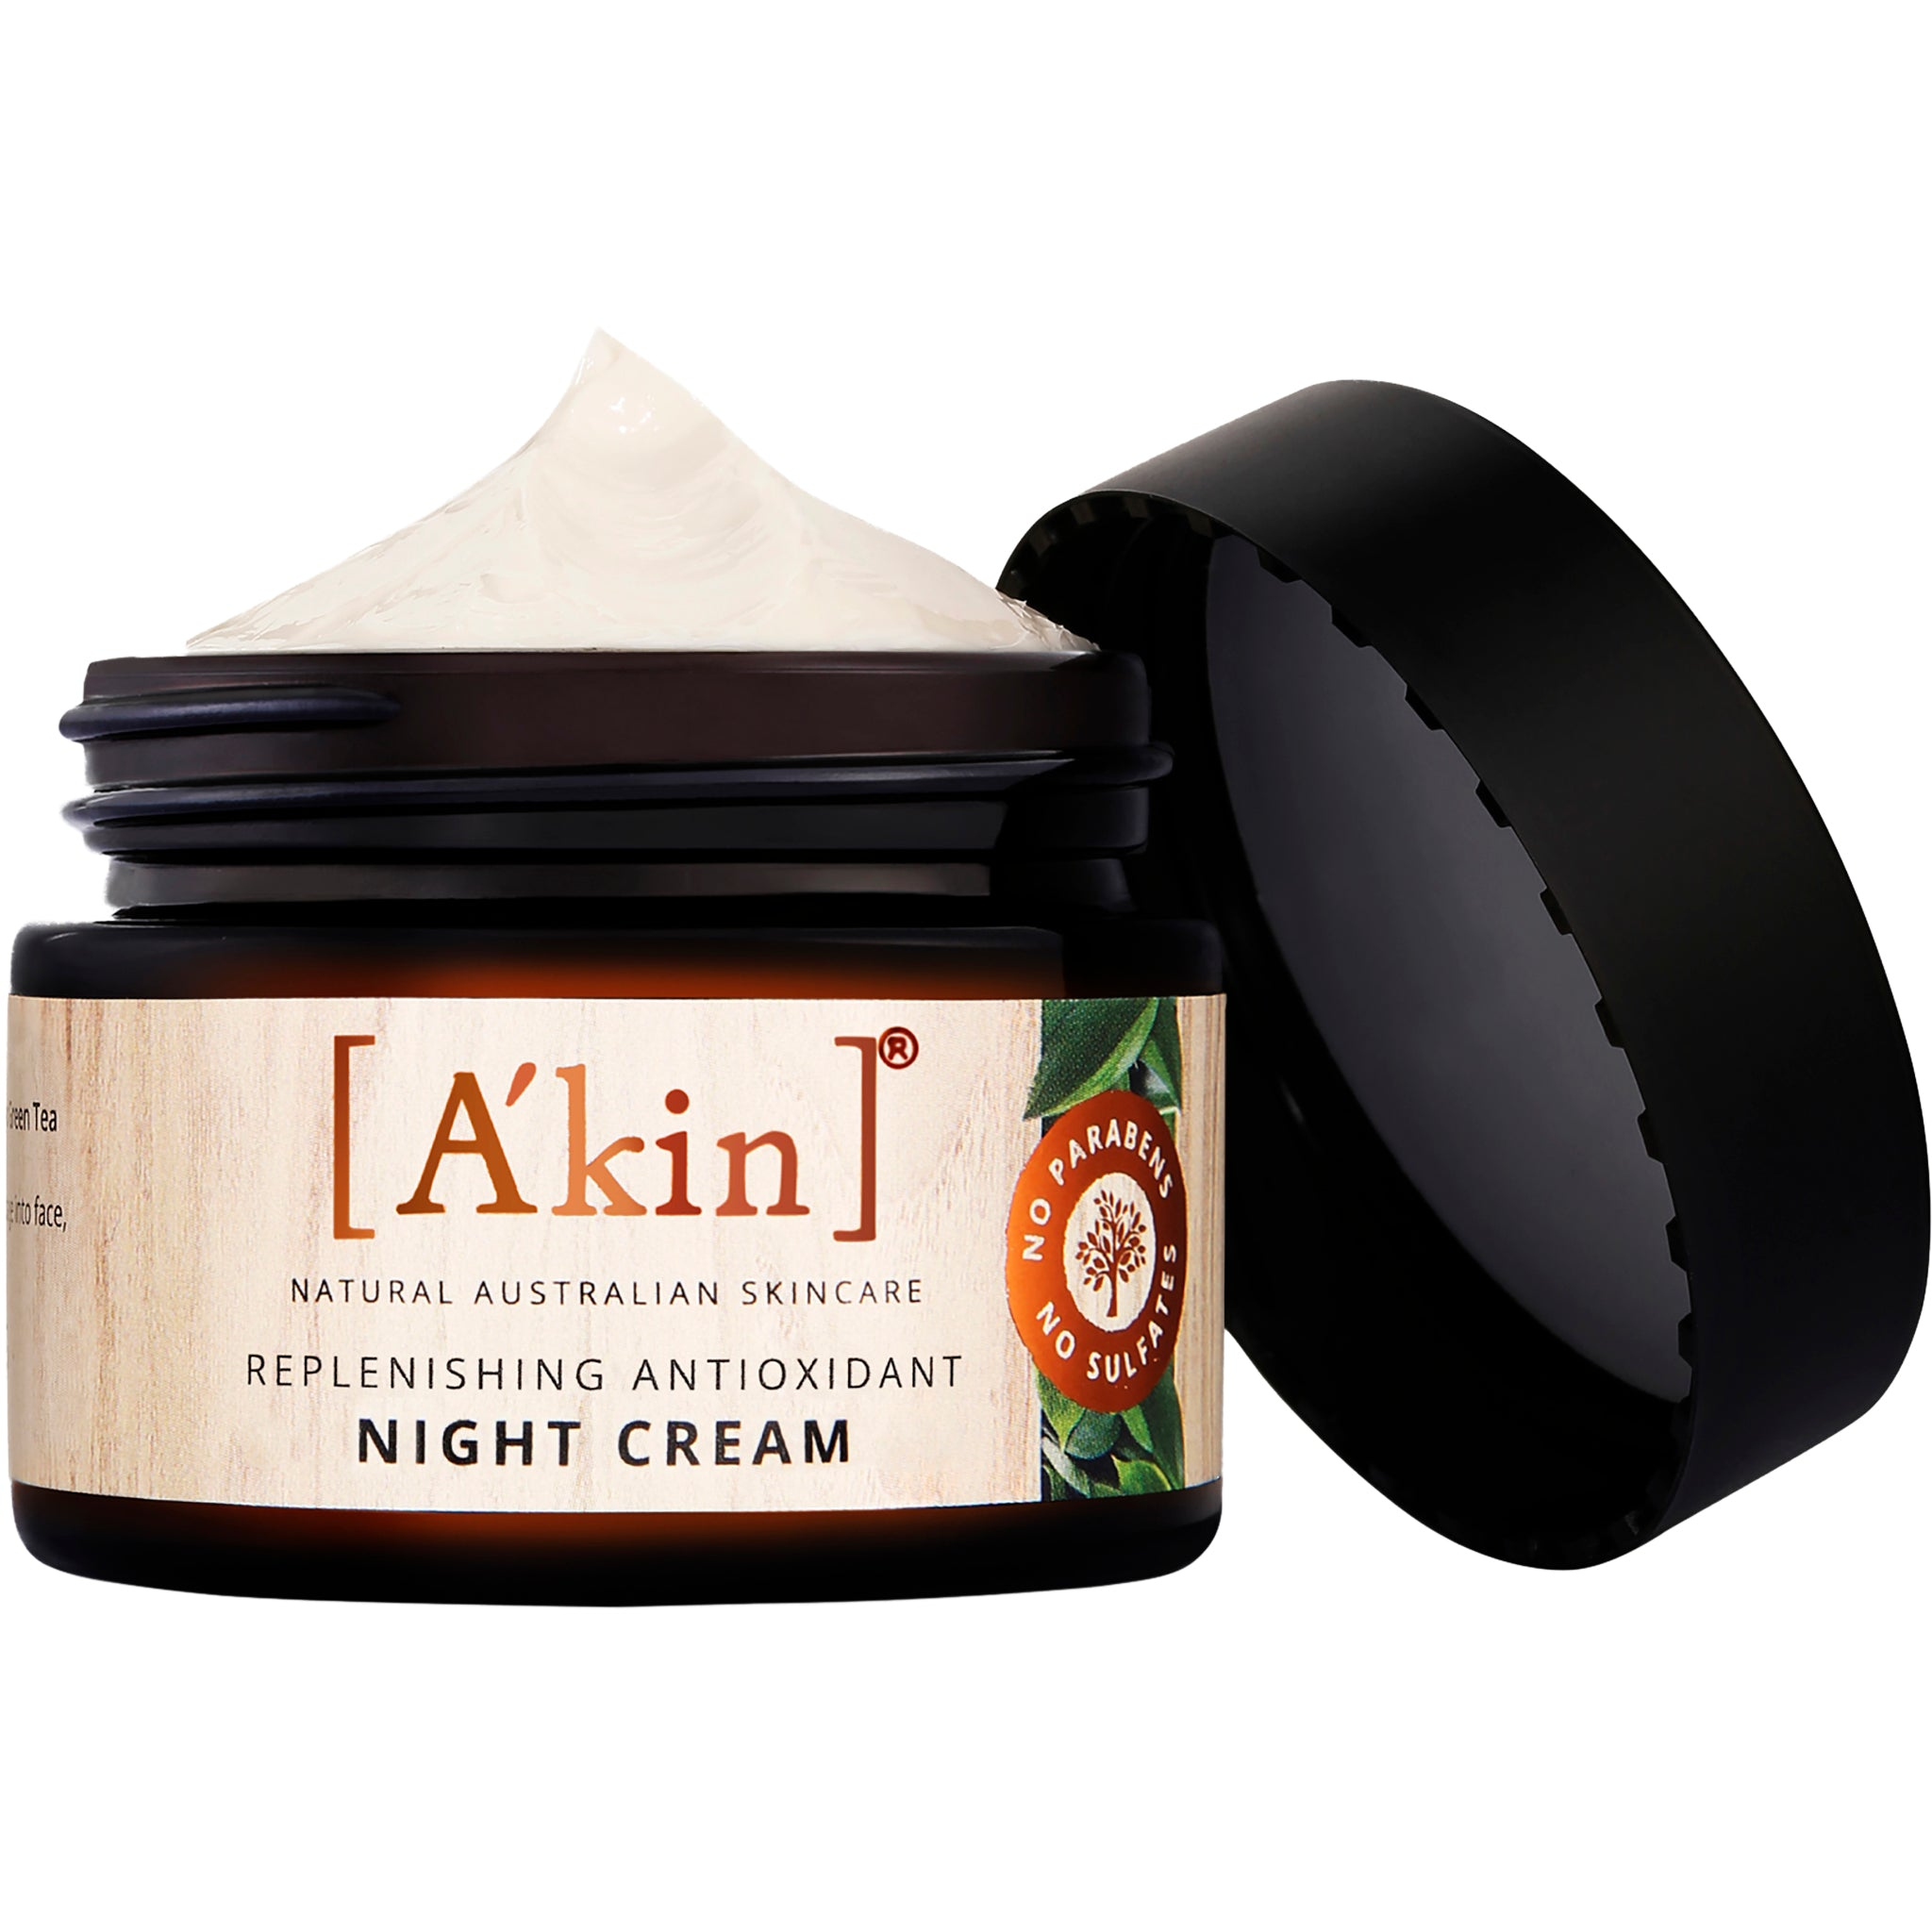 Replenishing Antioxidant Night Cream